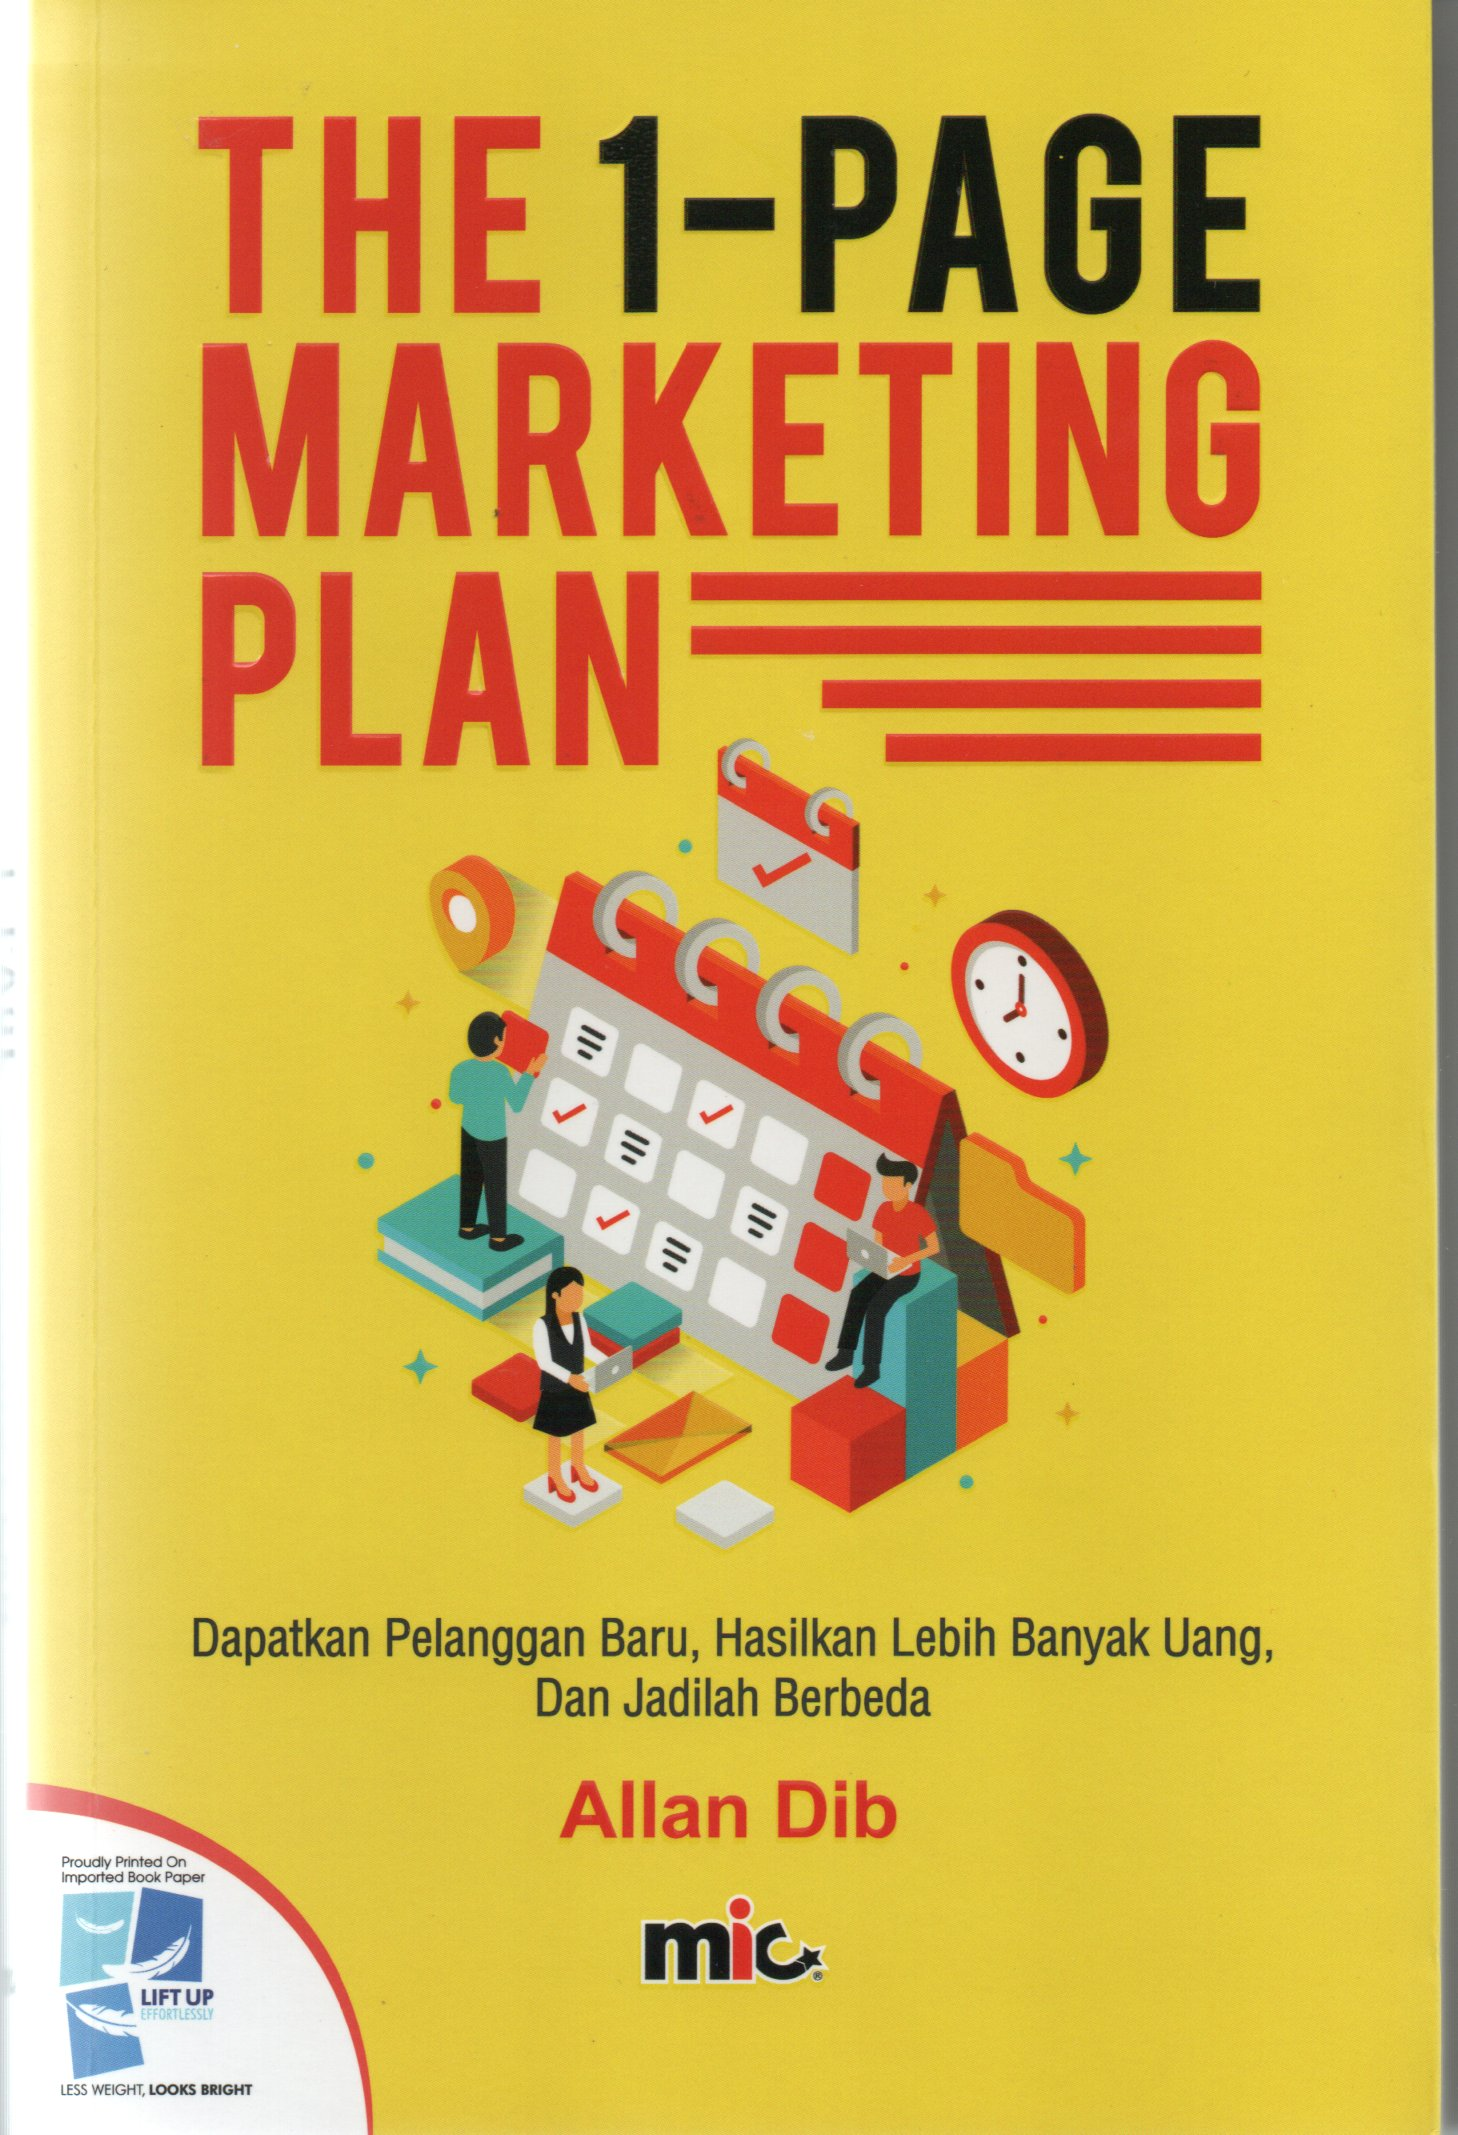 The I-page marketing plan / Allan Dib